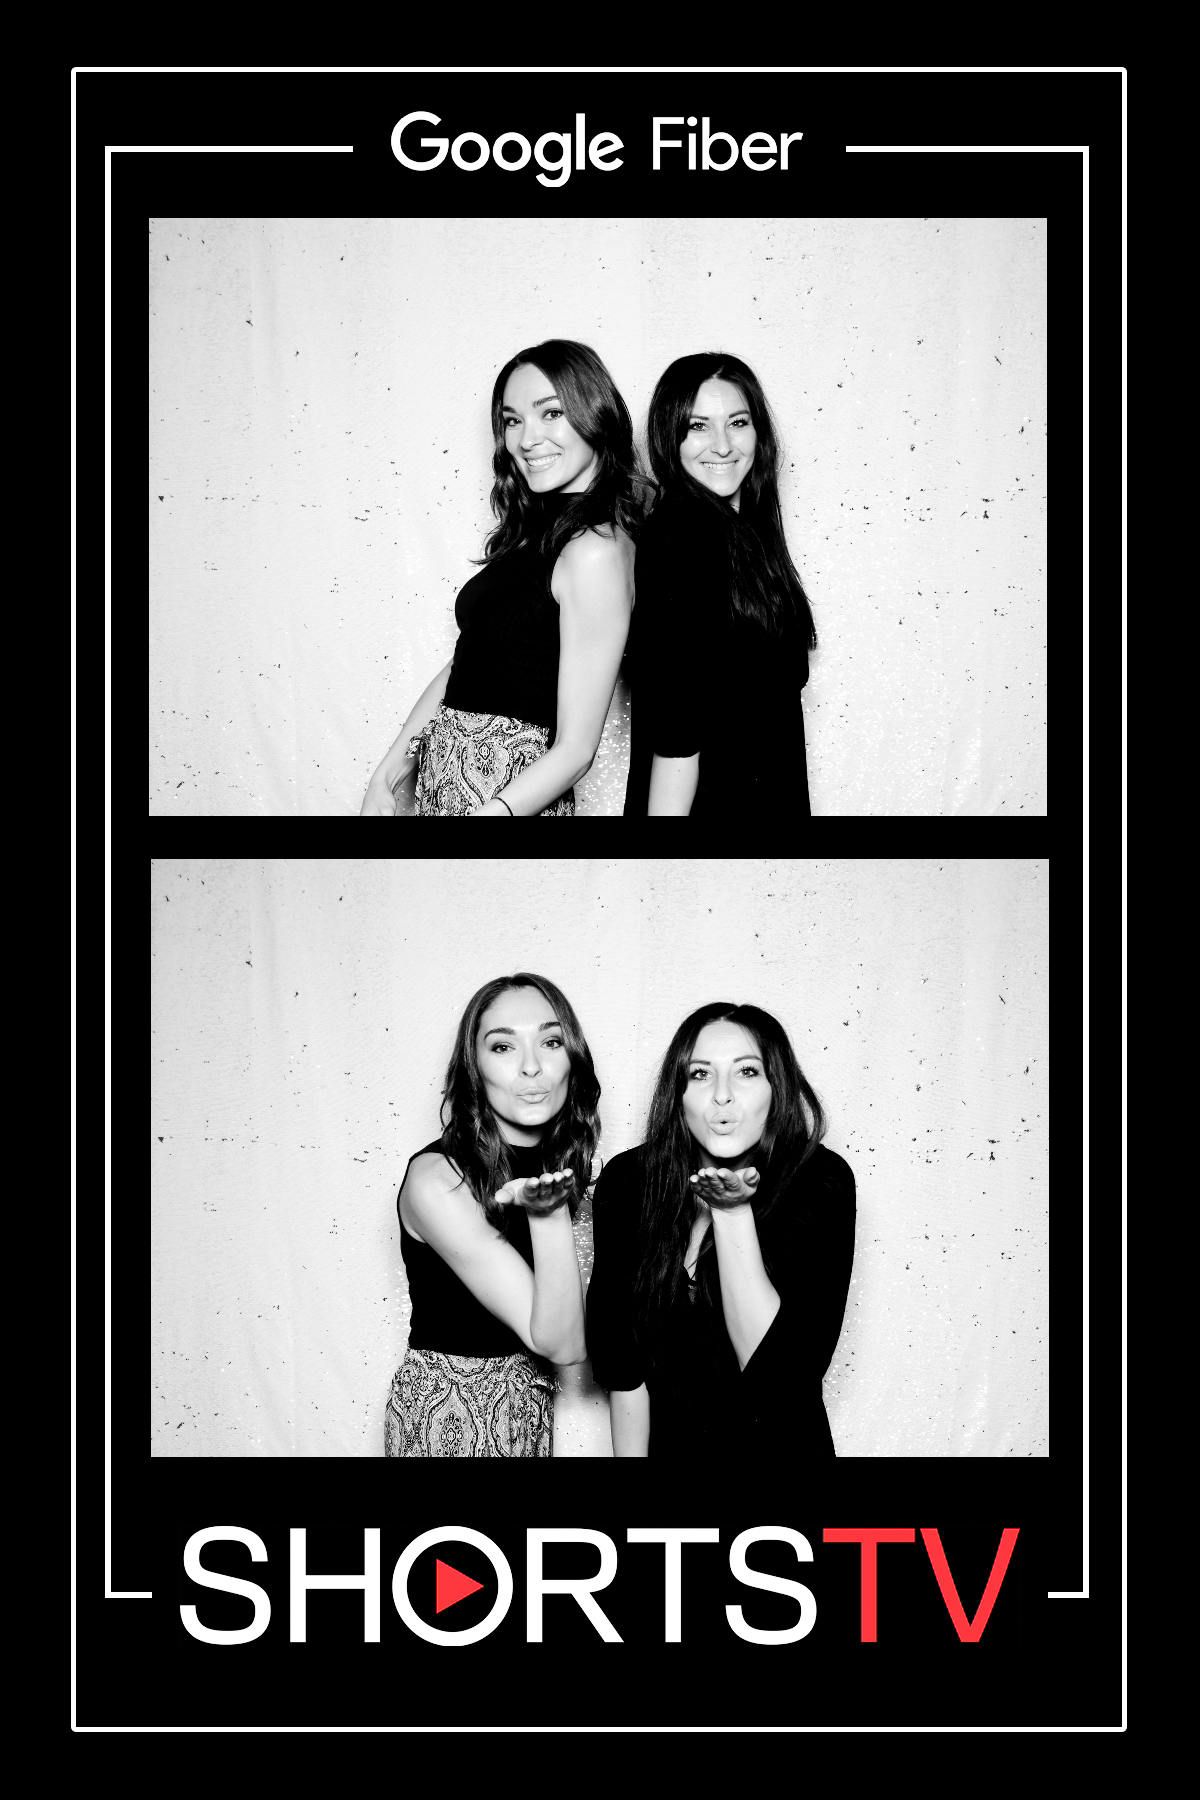 Photo Booth Composite Image of Two Women with Glam Filter applied